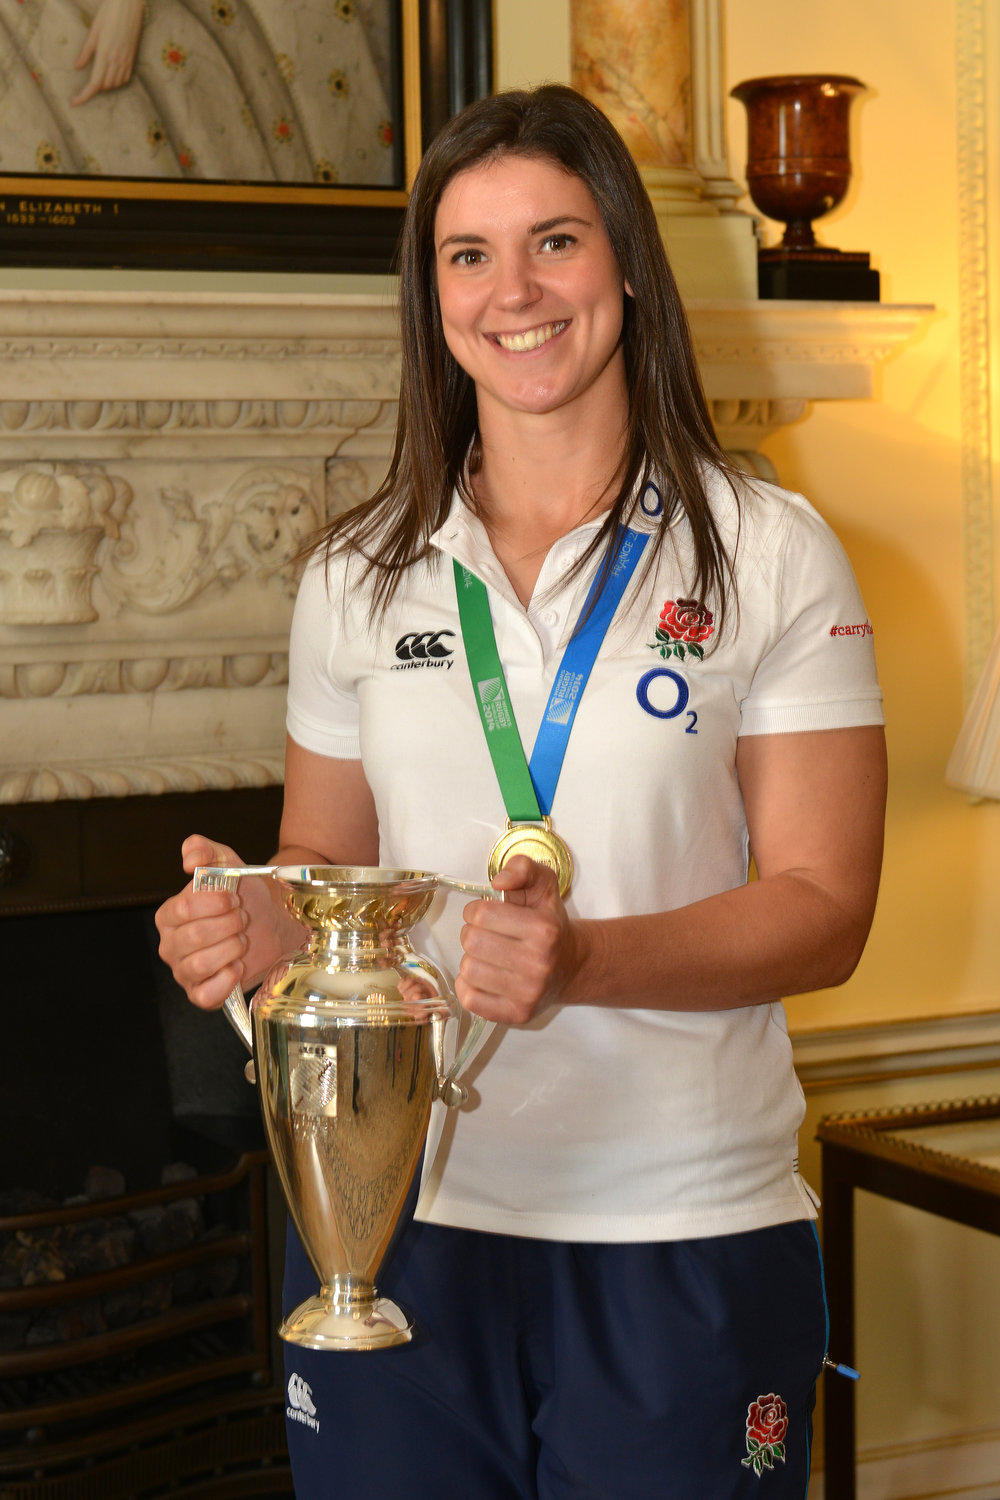 Sarah Hunter - England Rugby Captain, Rugby World Cup winner & MBE